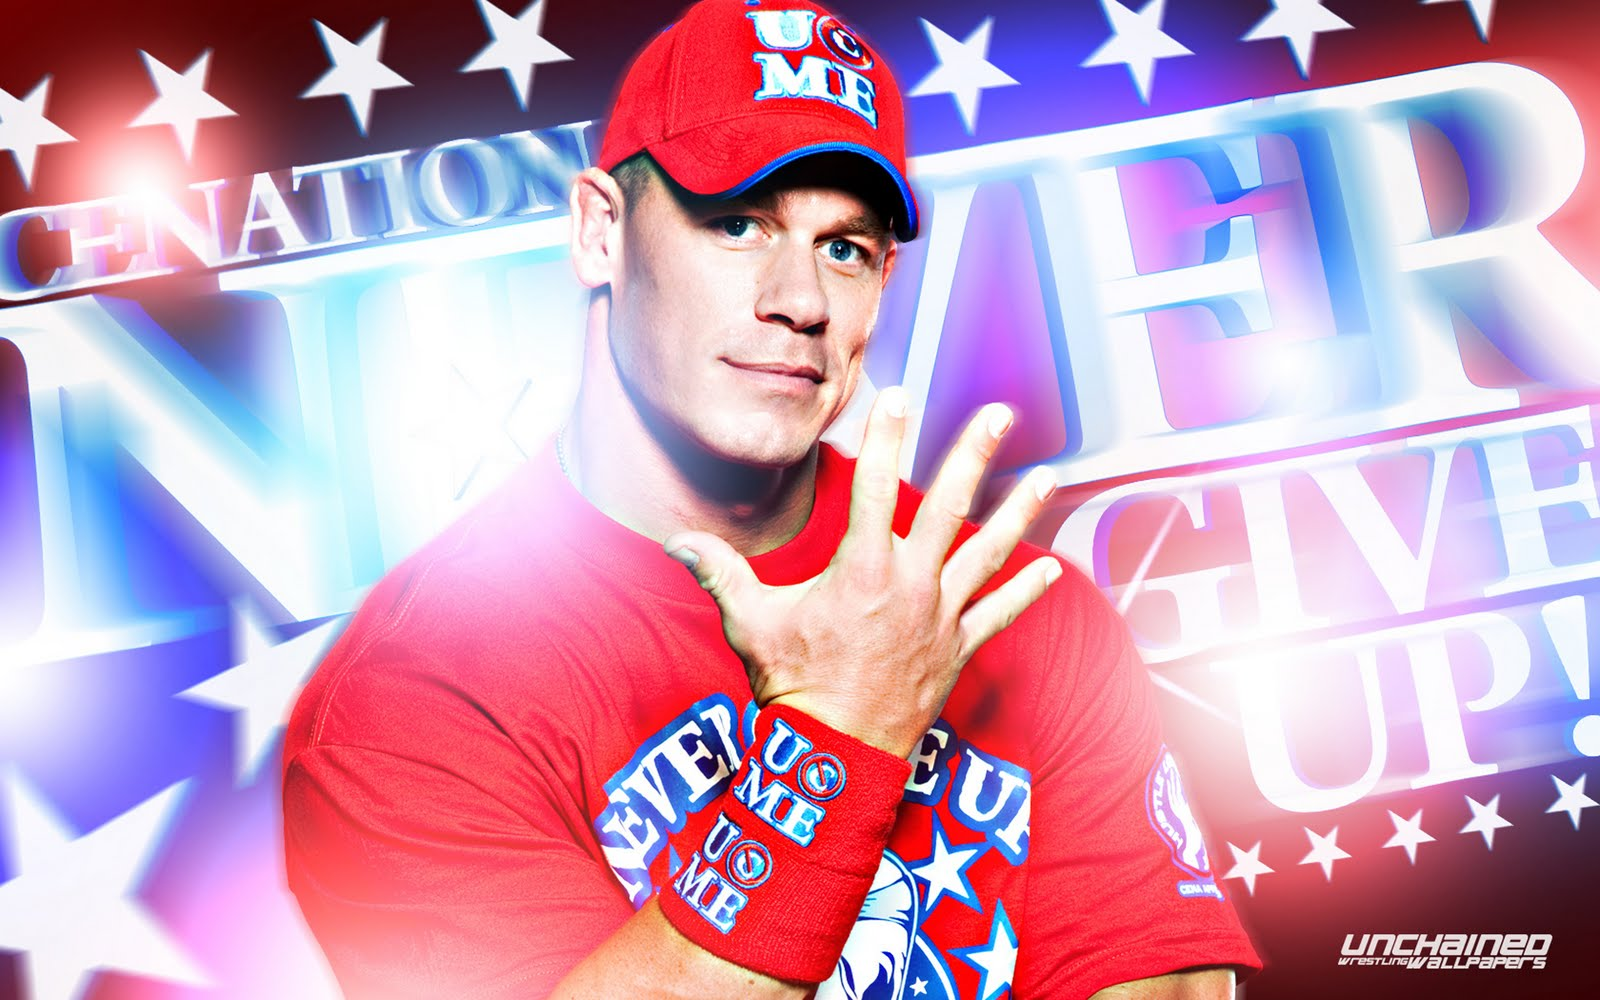 wwe superstars | wwe wallpapers | wwe wrestlemania: john cena 3d pics